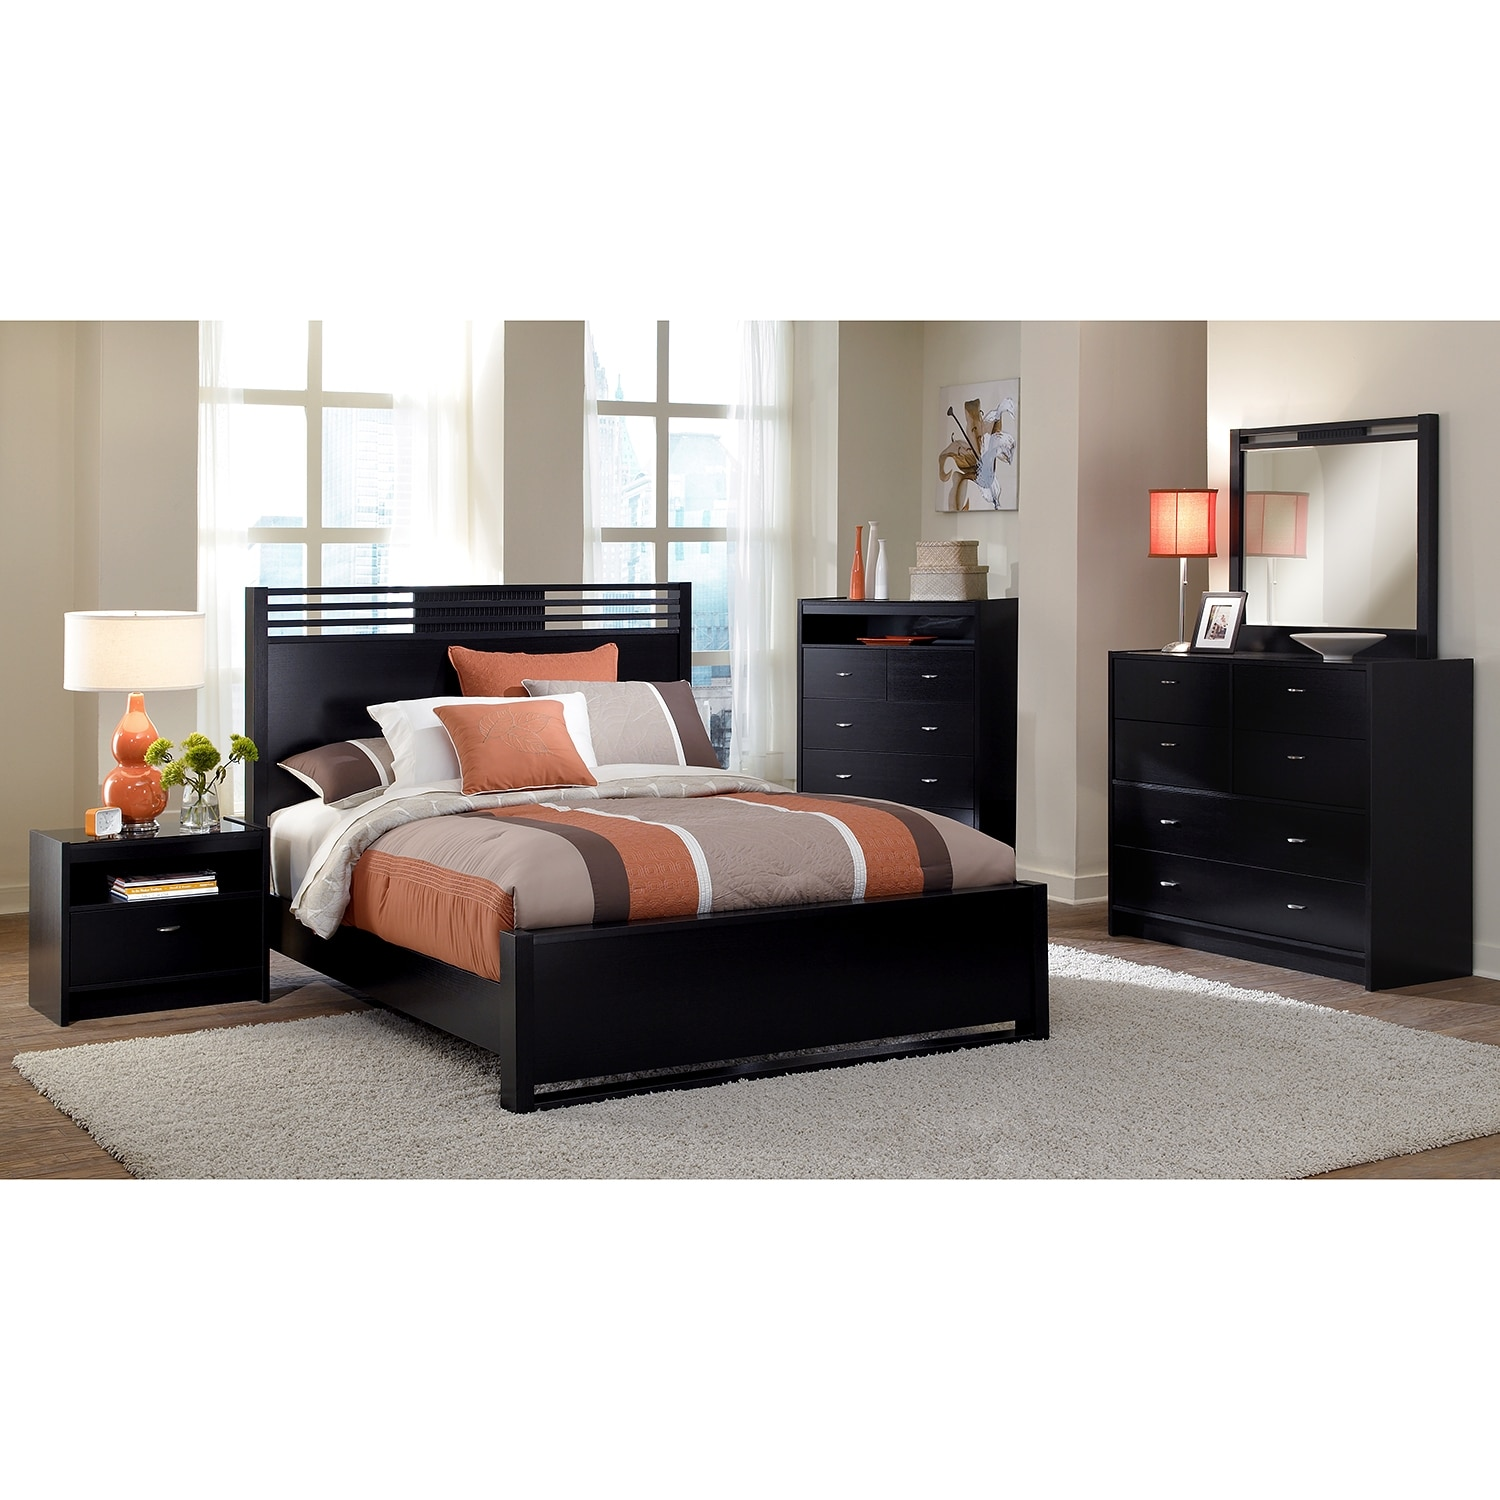 Bally Espresso 7-Piece Queen Bedroom Set with Chest - Black ...